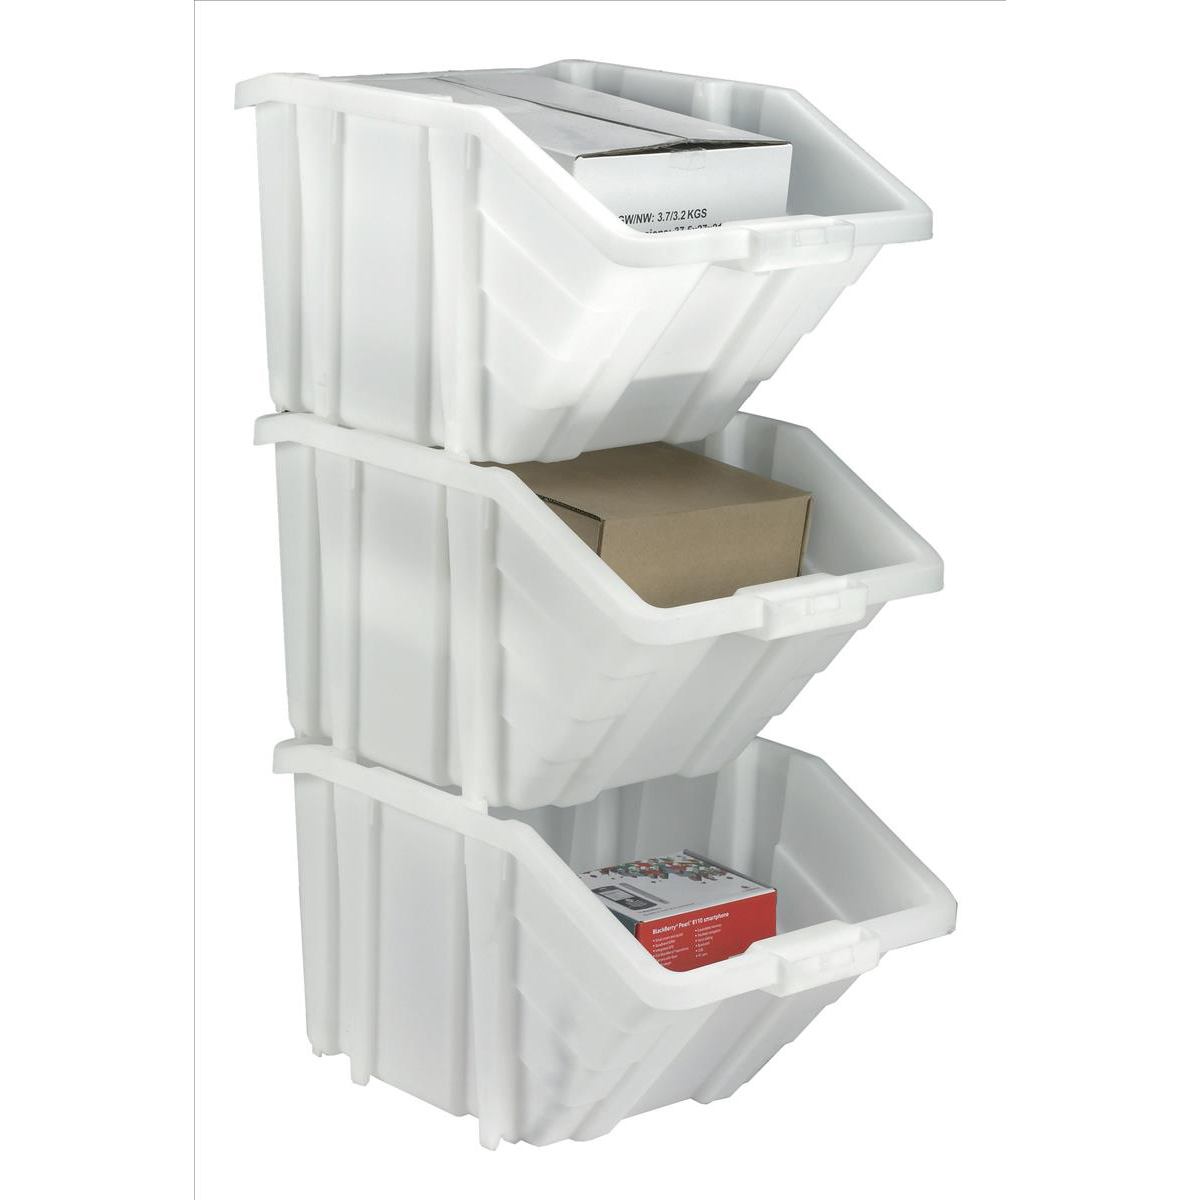 Storage Container Bin 50L 30kg Load W390xD630xH340mm White and Assorted Lids Pack 4